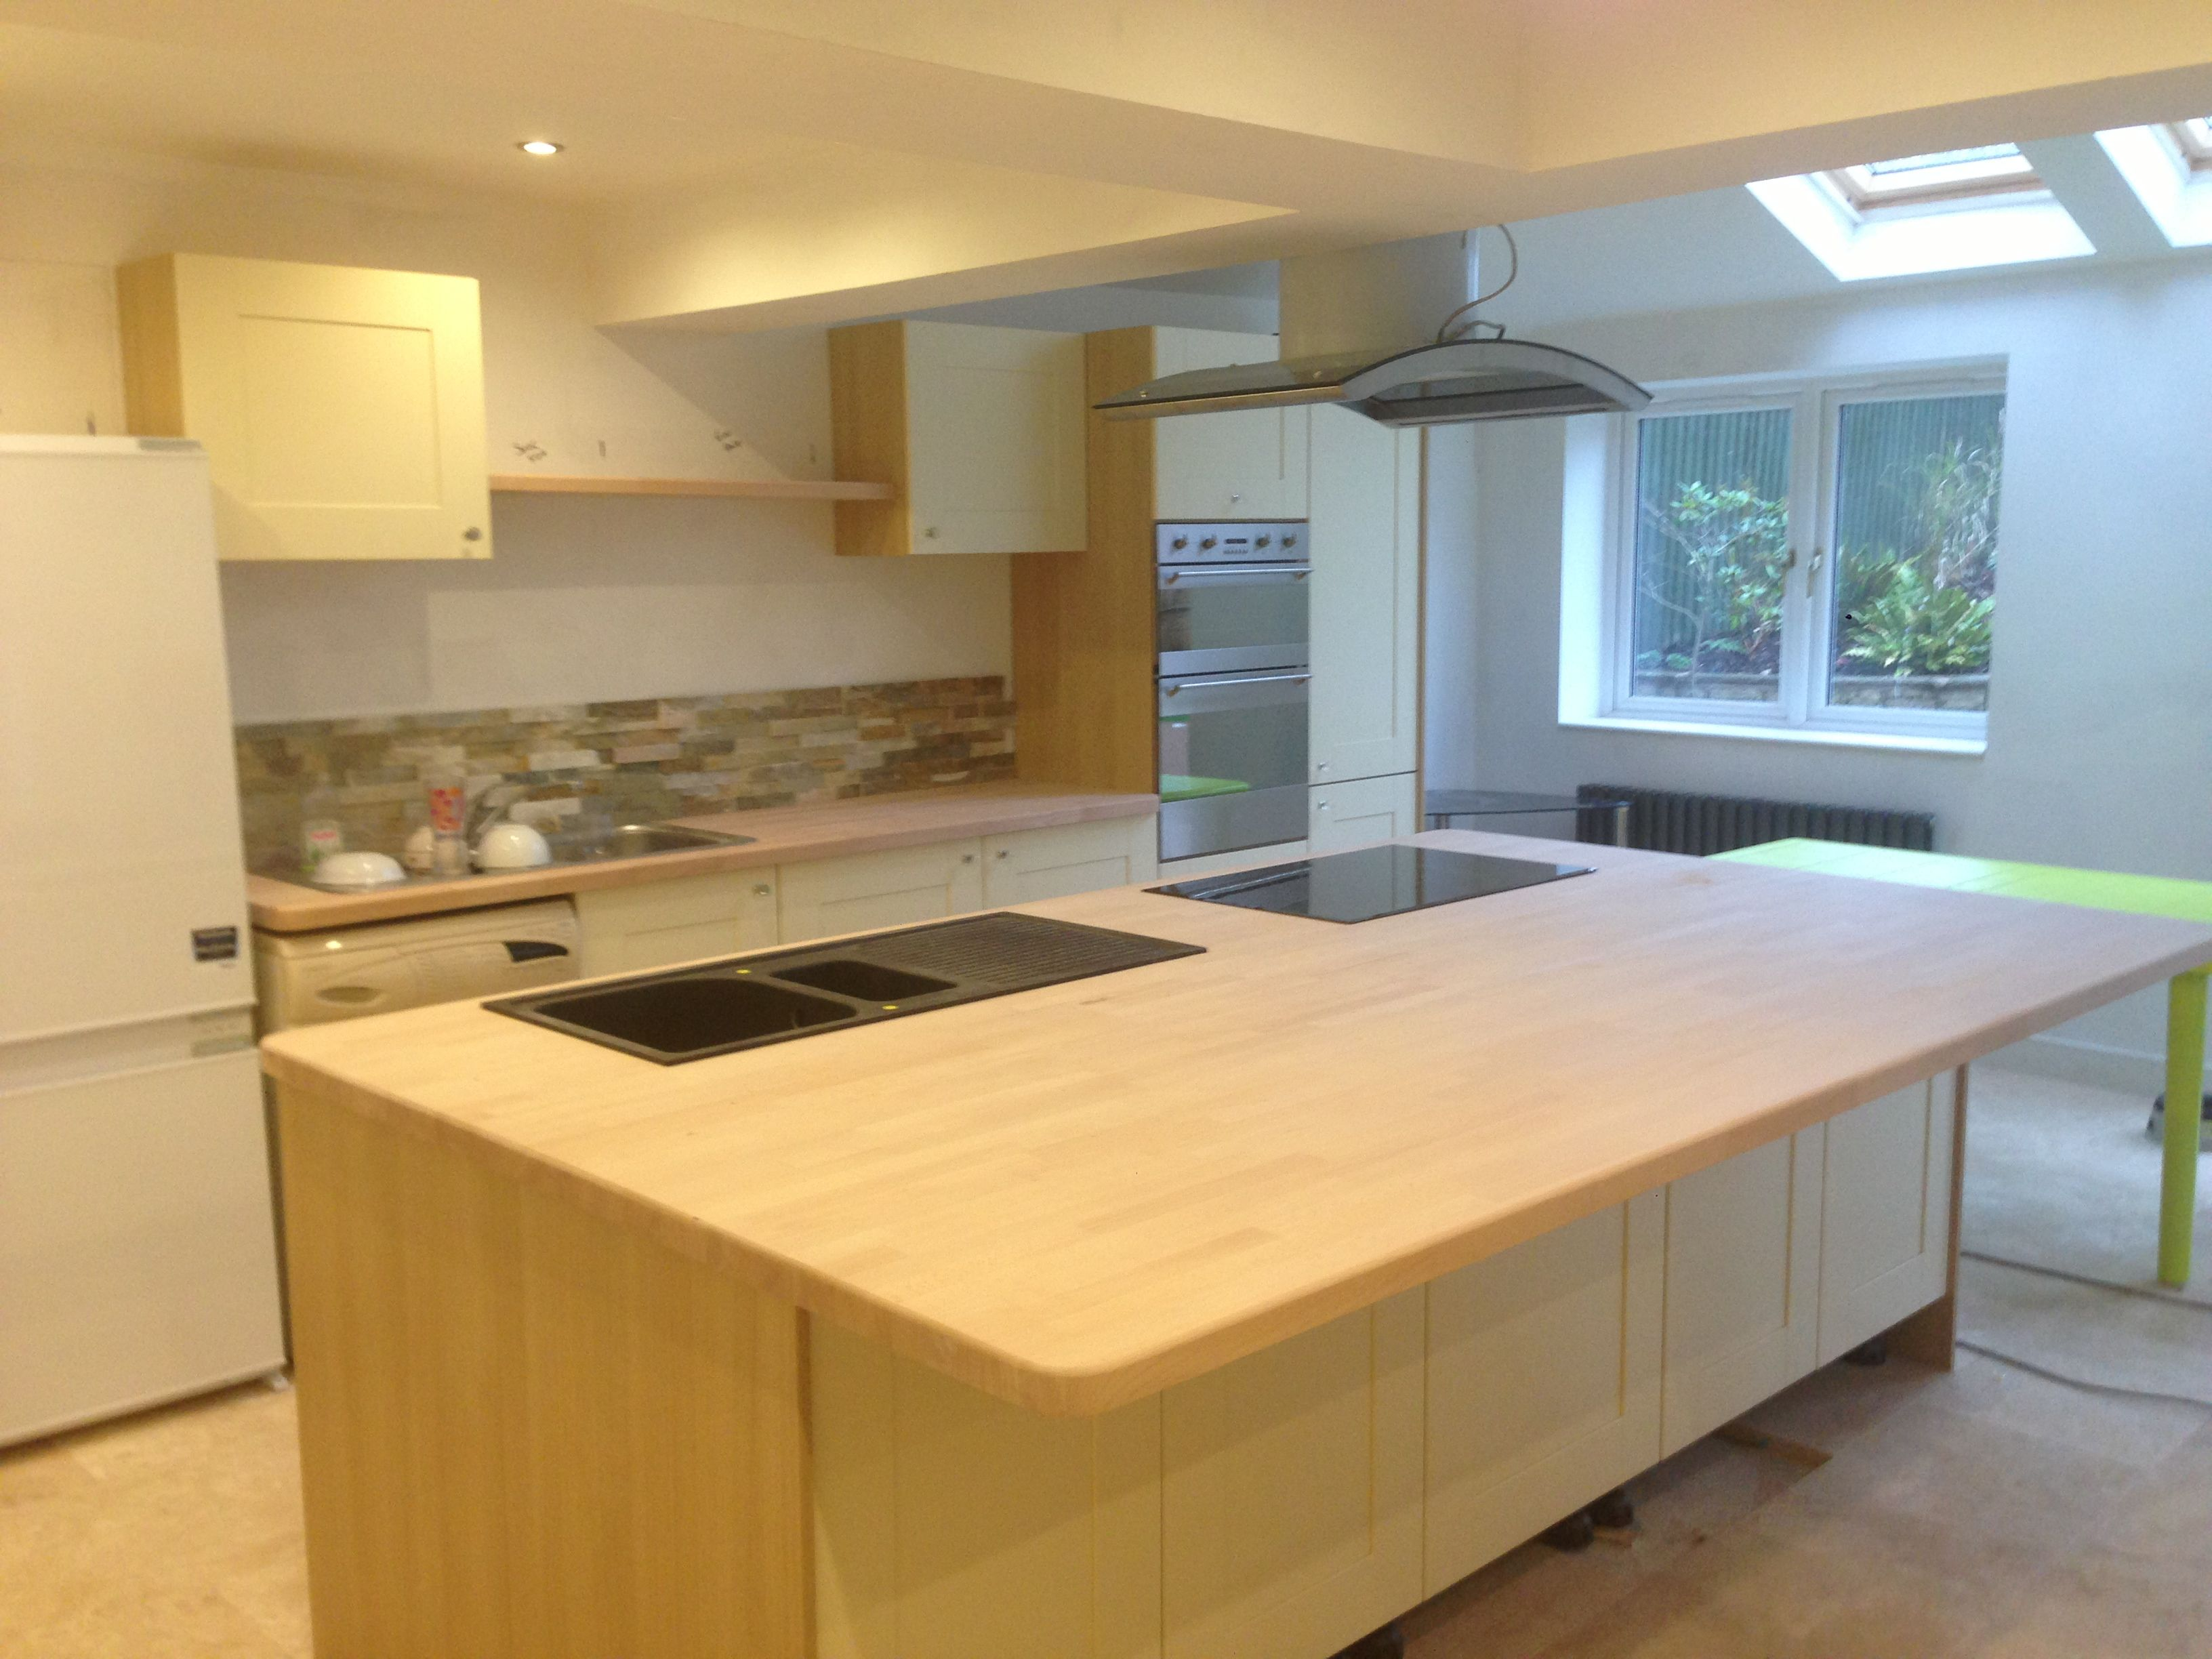 Kitchen refurb, Biddulph Builders